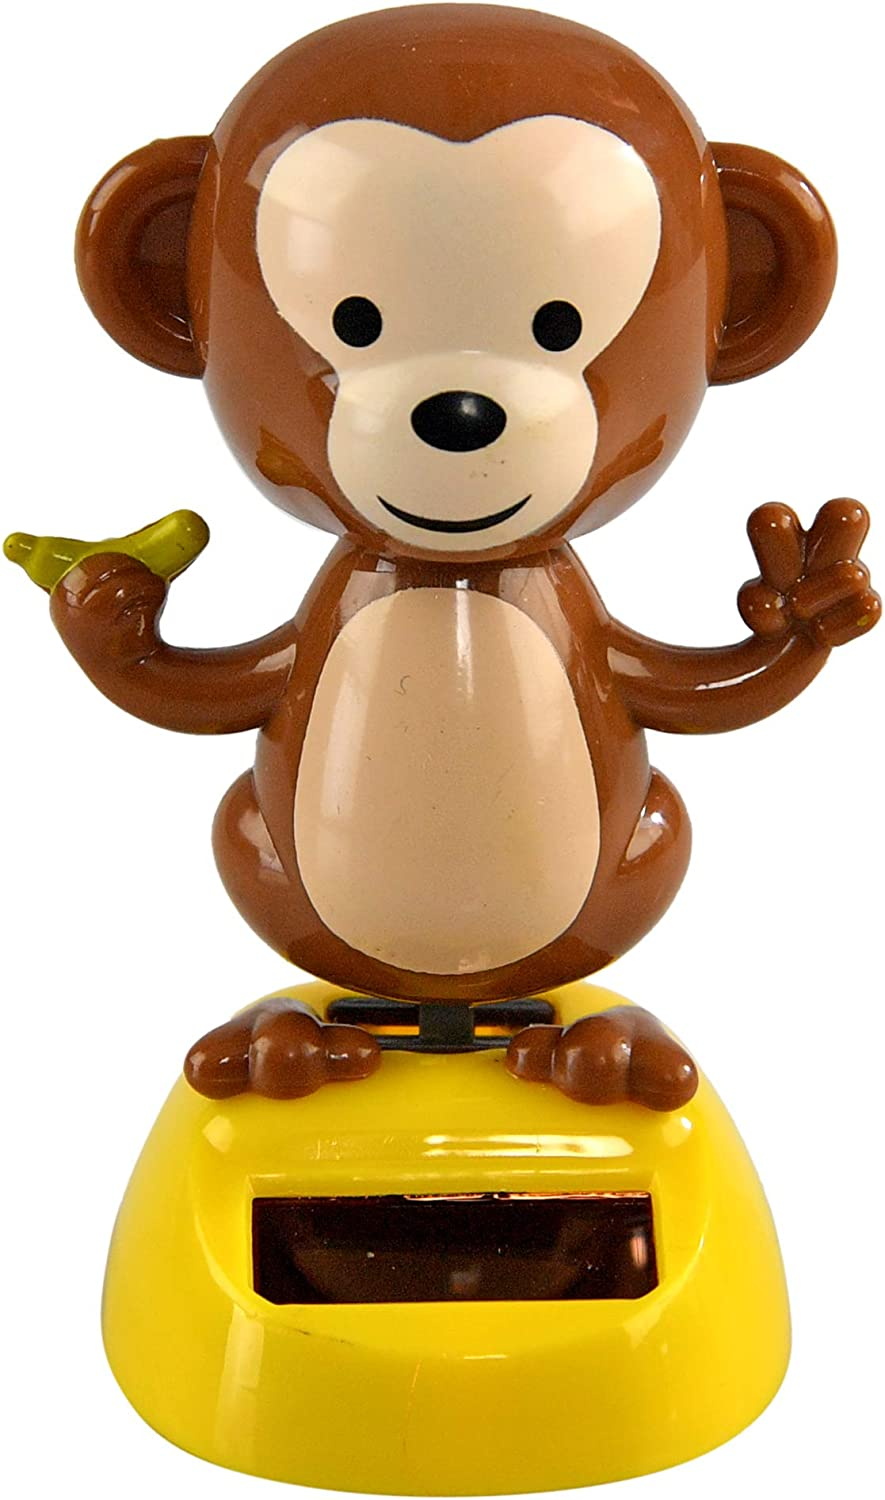 "Home-X Solar-Power Dancing Monkey Figure, Office Décor, 3 3/4"" Tall"